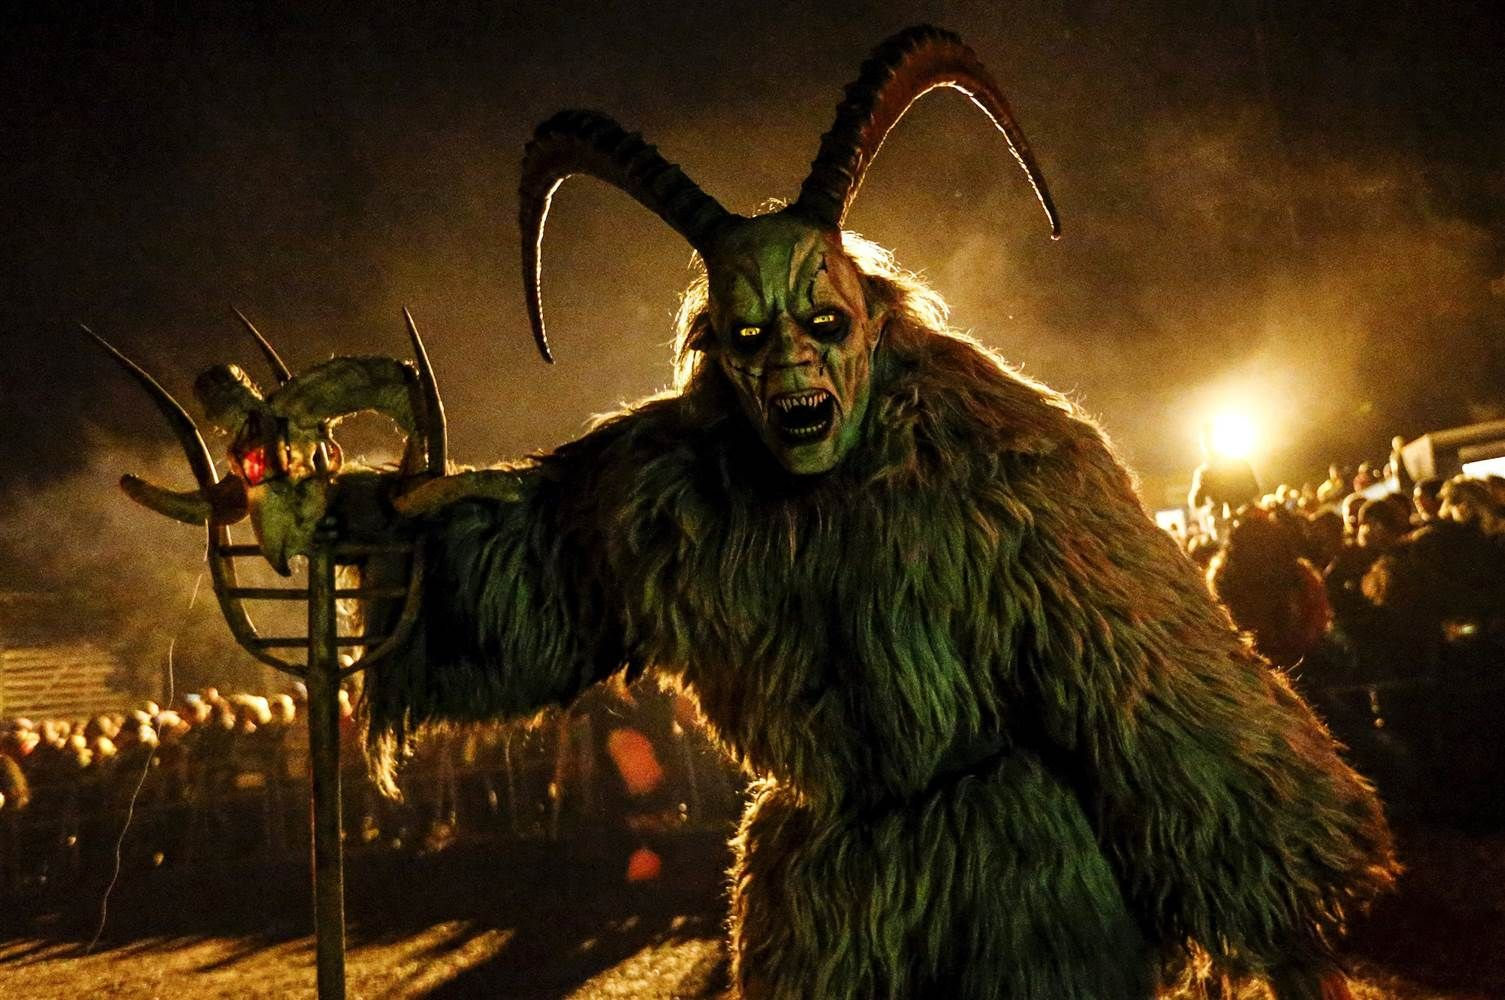 Image: Man dressed in a traditional Krampus costume and mask